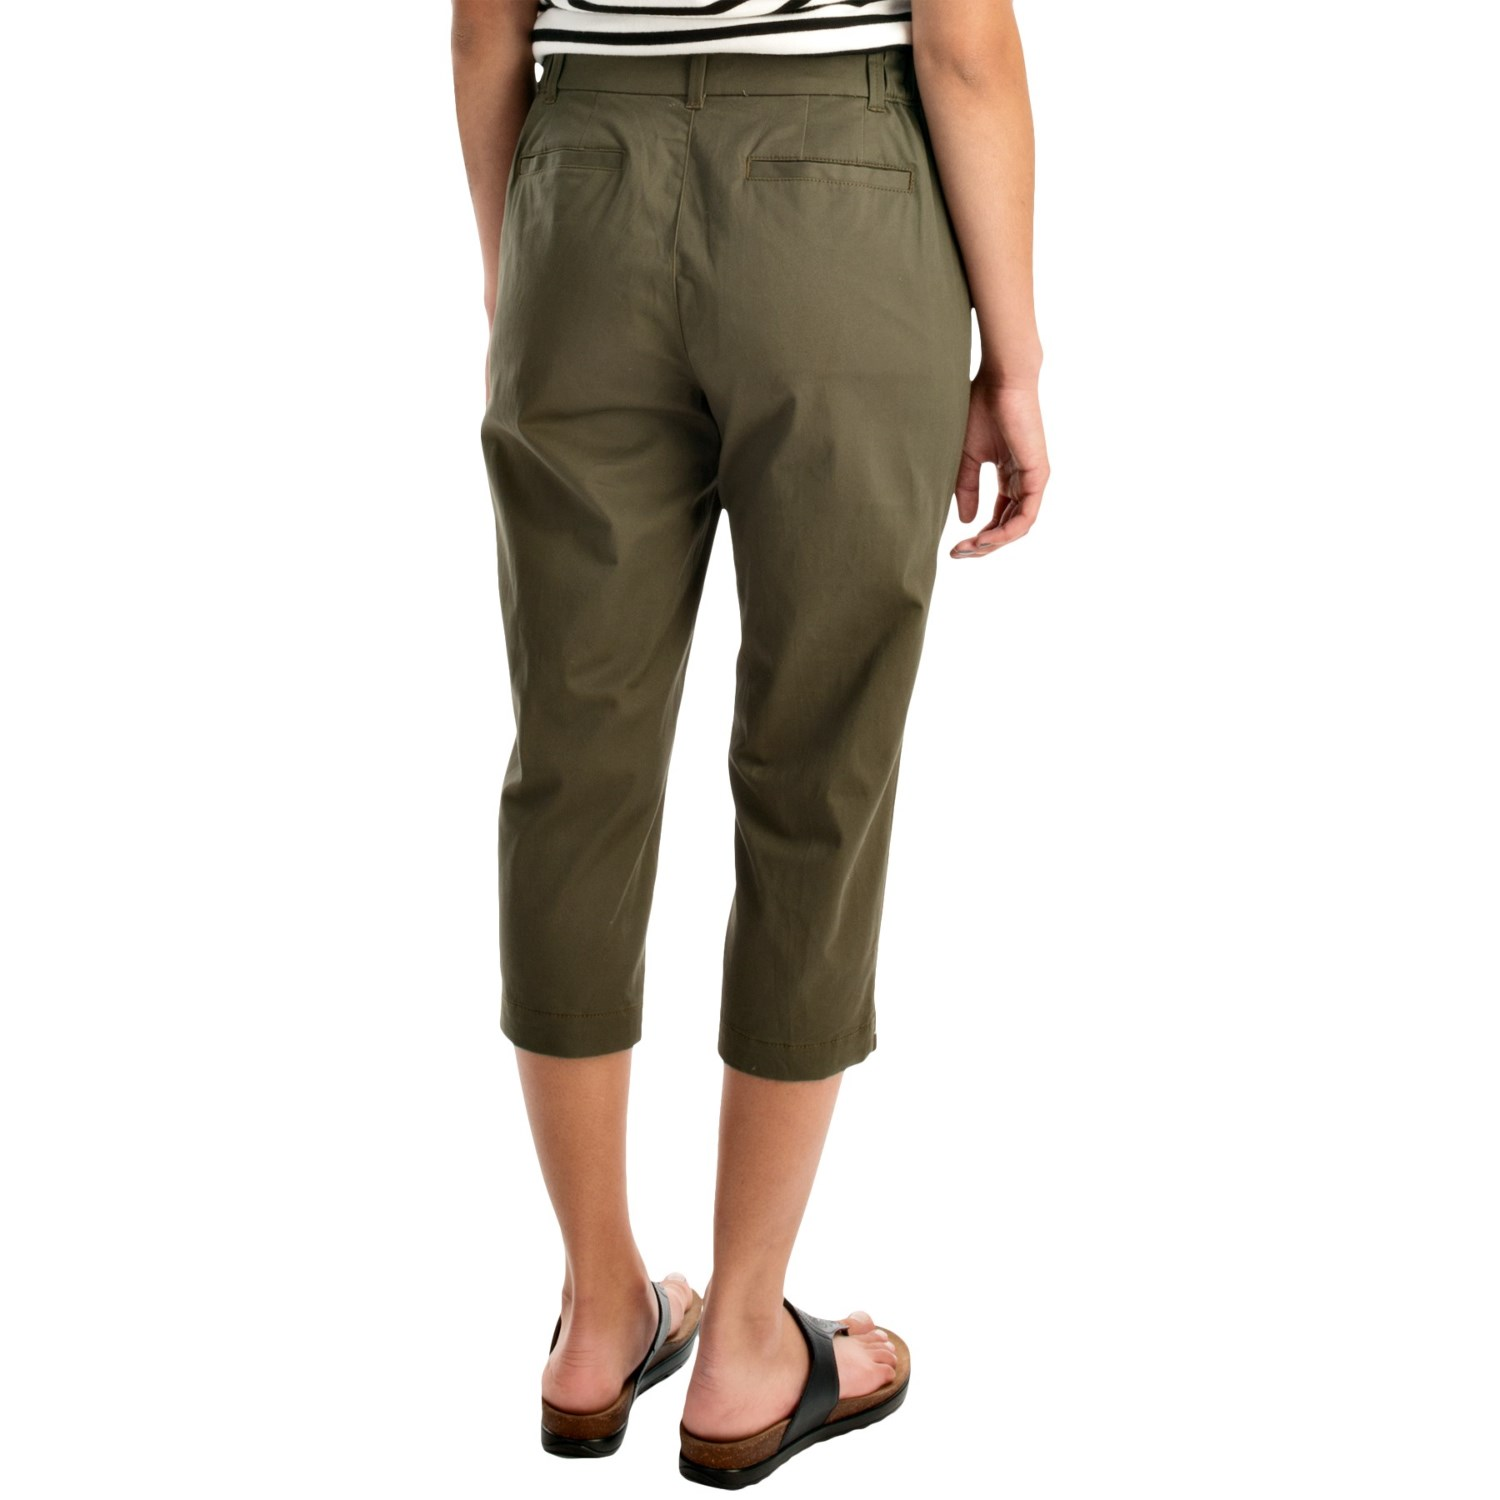 Lastest Newser  Capri Pants Have Befouled The Landscape For Way Too  Try Fulllength Lightweight Linen Or Cotton Pants Instead Theyre Cooler Than Pants What, Your Ankles Are Hottest Part Of Your Body? Youll Be Just As Cool In Slacks Or